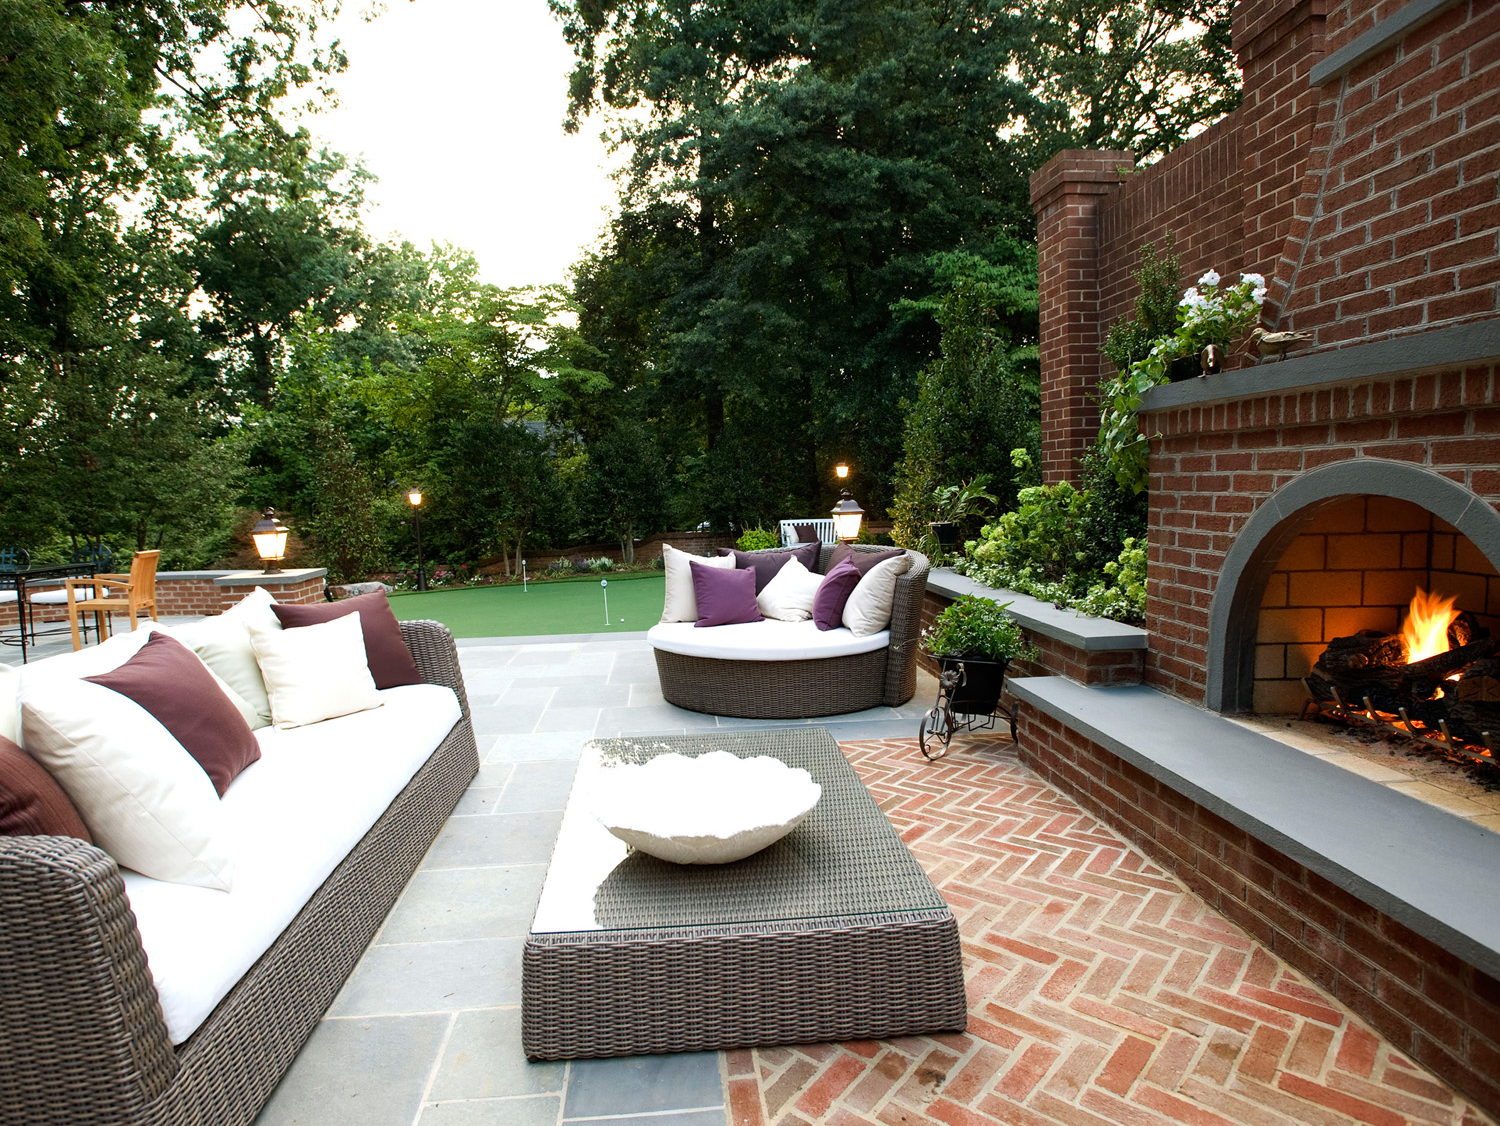 McLean Residence Patio & Fireplace